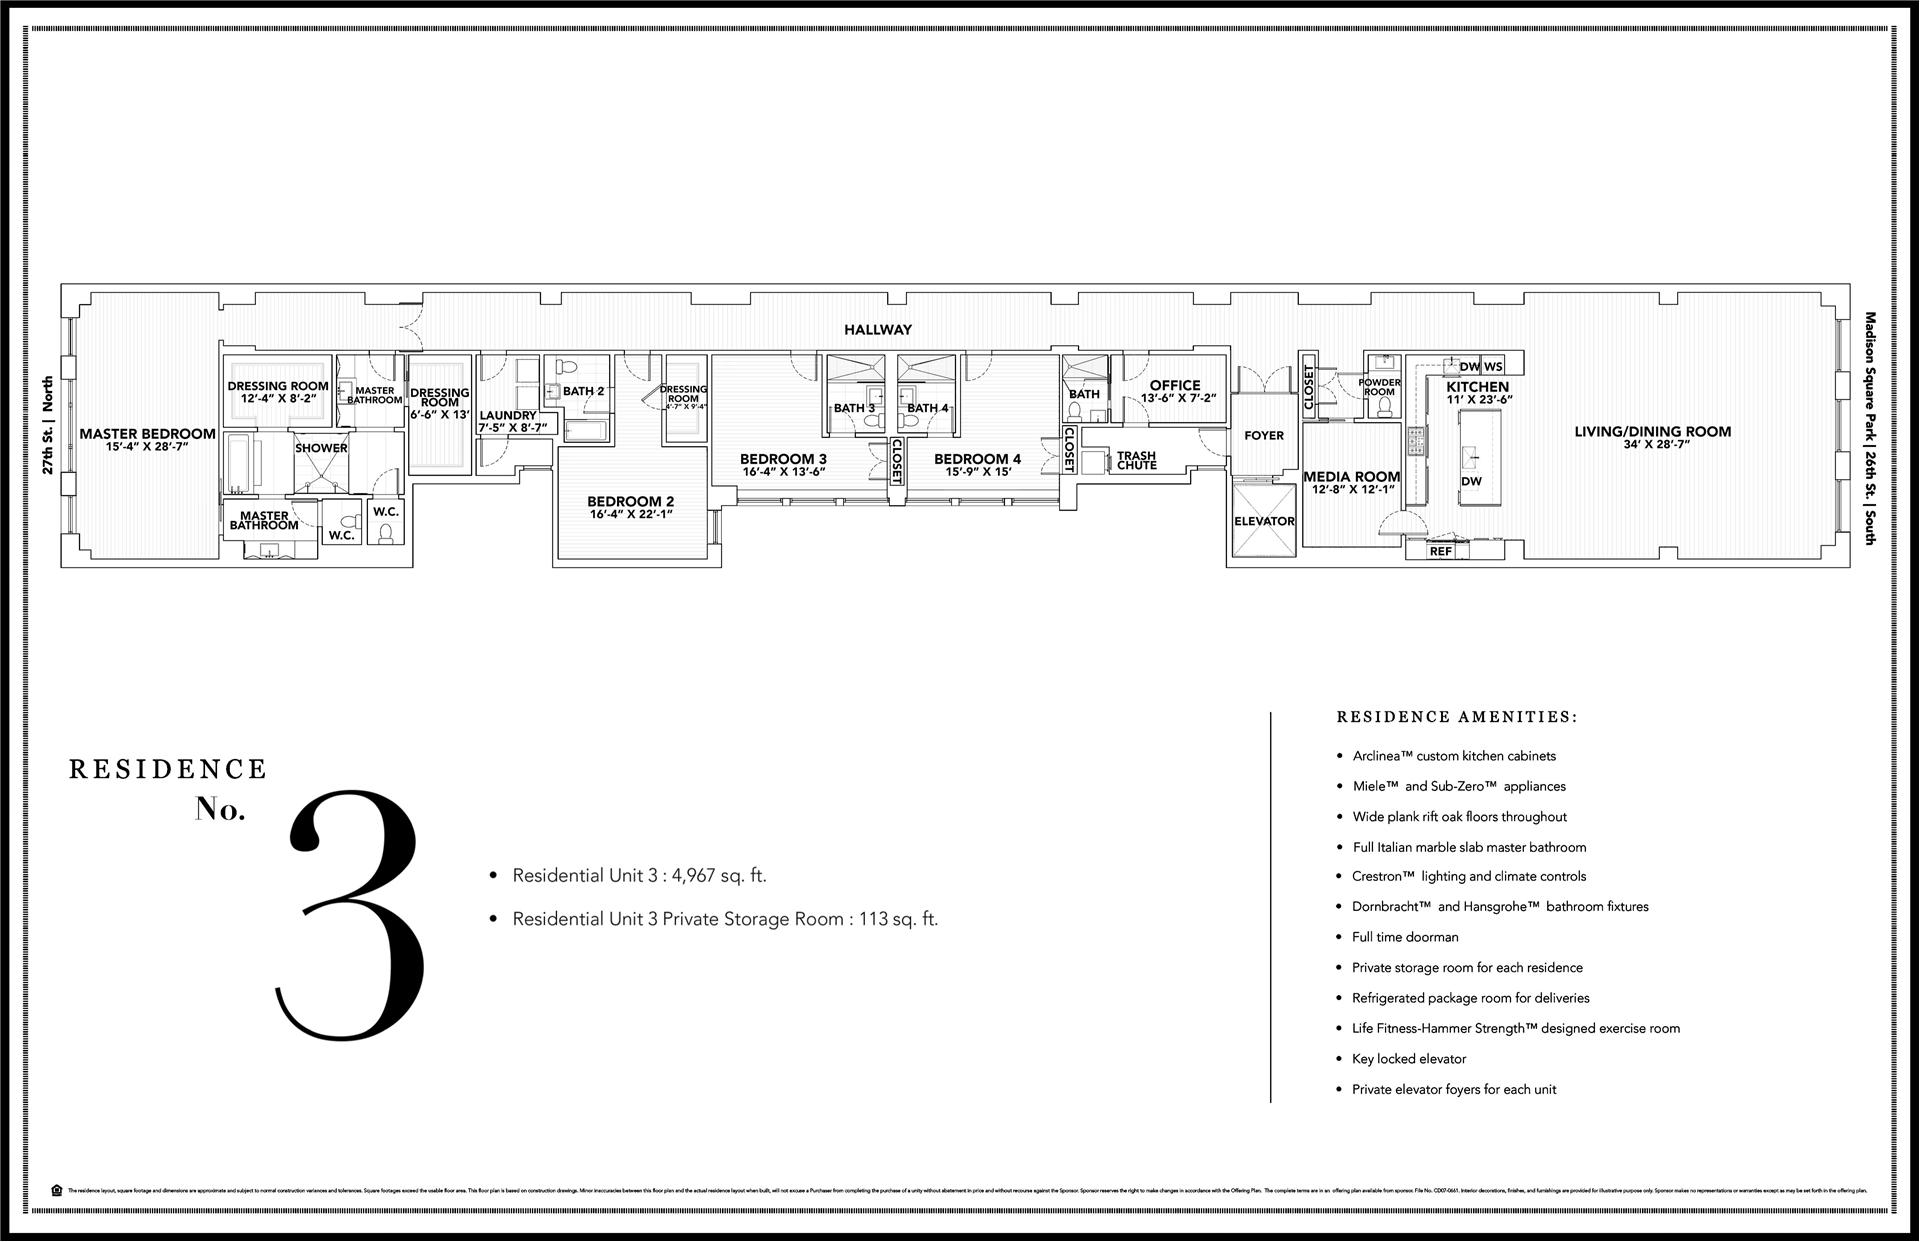 Floor plan of The Whitman, 21 East 26th Street, 3 - NoMad, New York